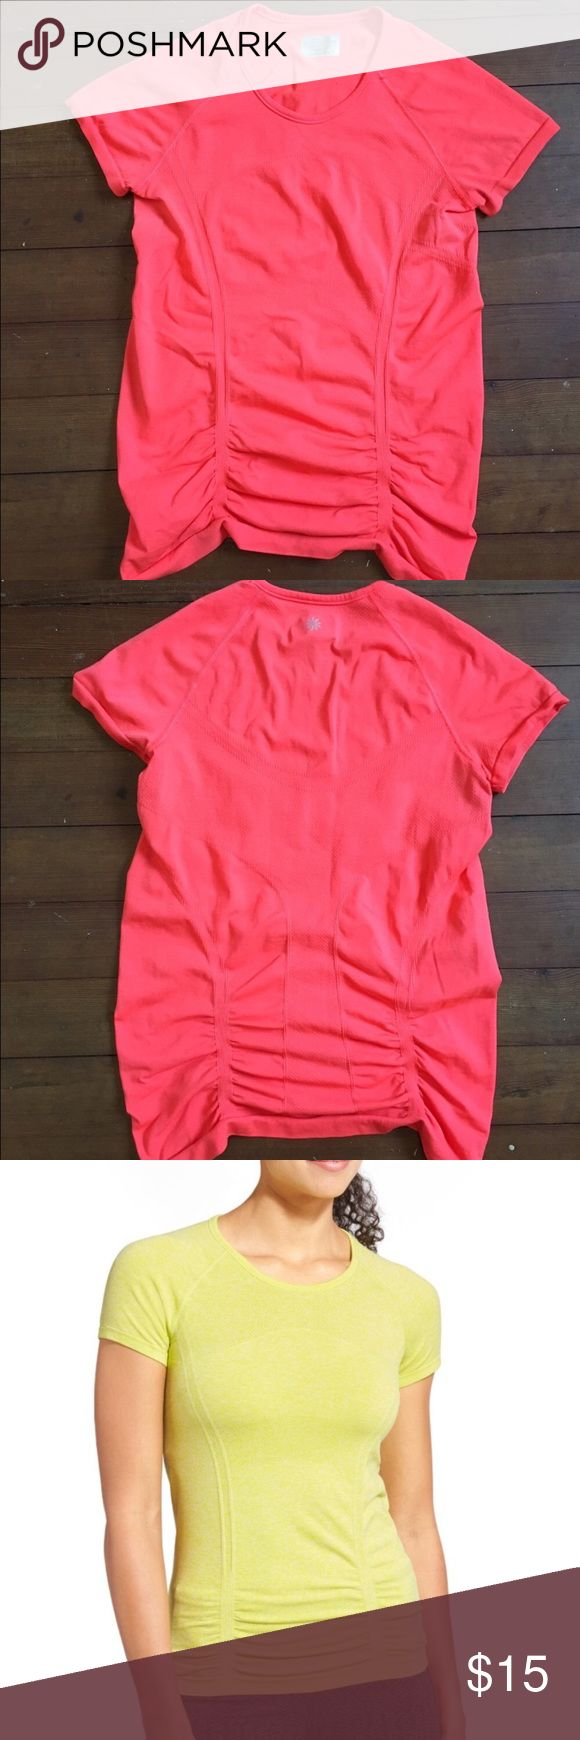 """Athlete Fastest Track Tee Athleta by Gap """"Fastest Track Tee""""                                        This tee is in a bright orange color and is in perfect condition INSPIRED FOR: run, gym/training, studio workouts Raglan sleeves give you room to move More streamlined shirring is fit to flatter Gripper dots along hem stop it from riding up                    50% polyester  45% nylon 5% spandex Athleta Tops Tees - Short Sleeve"""